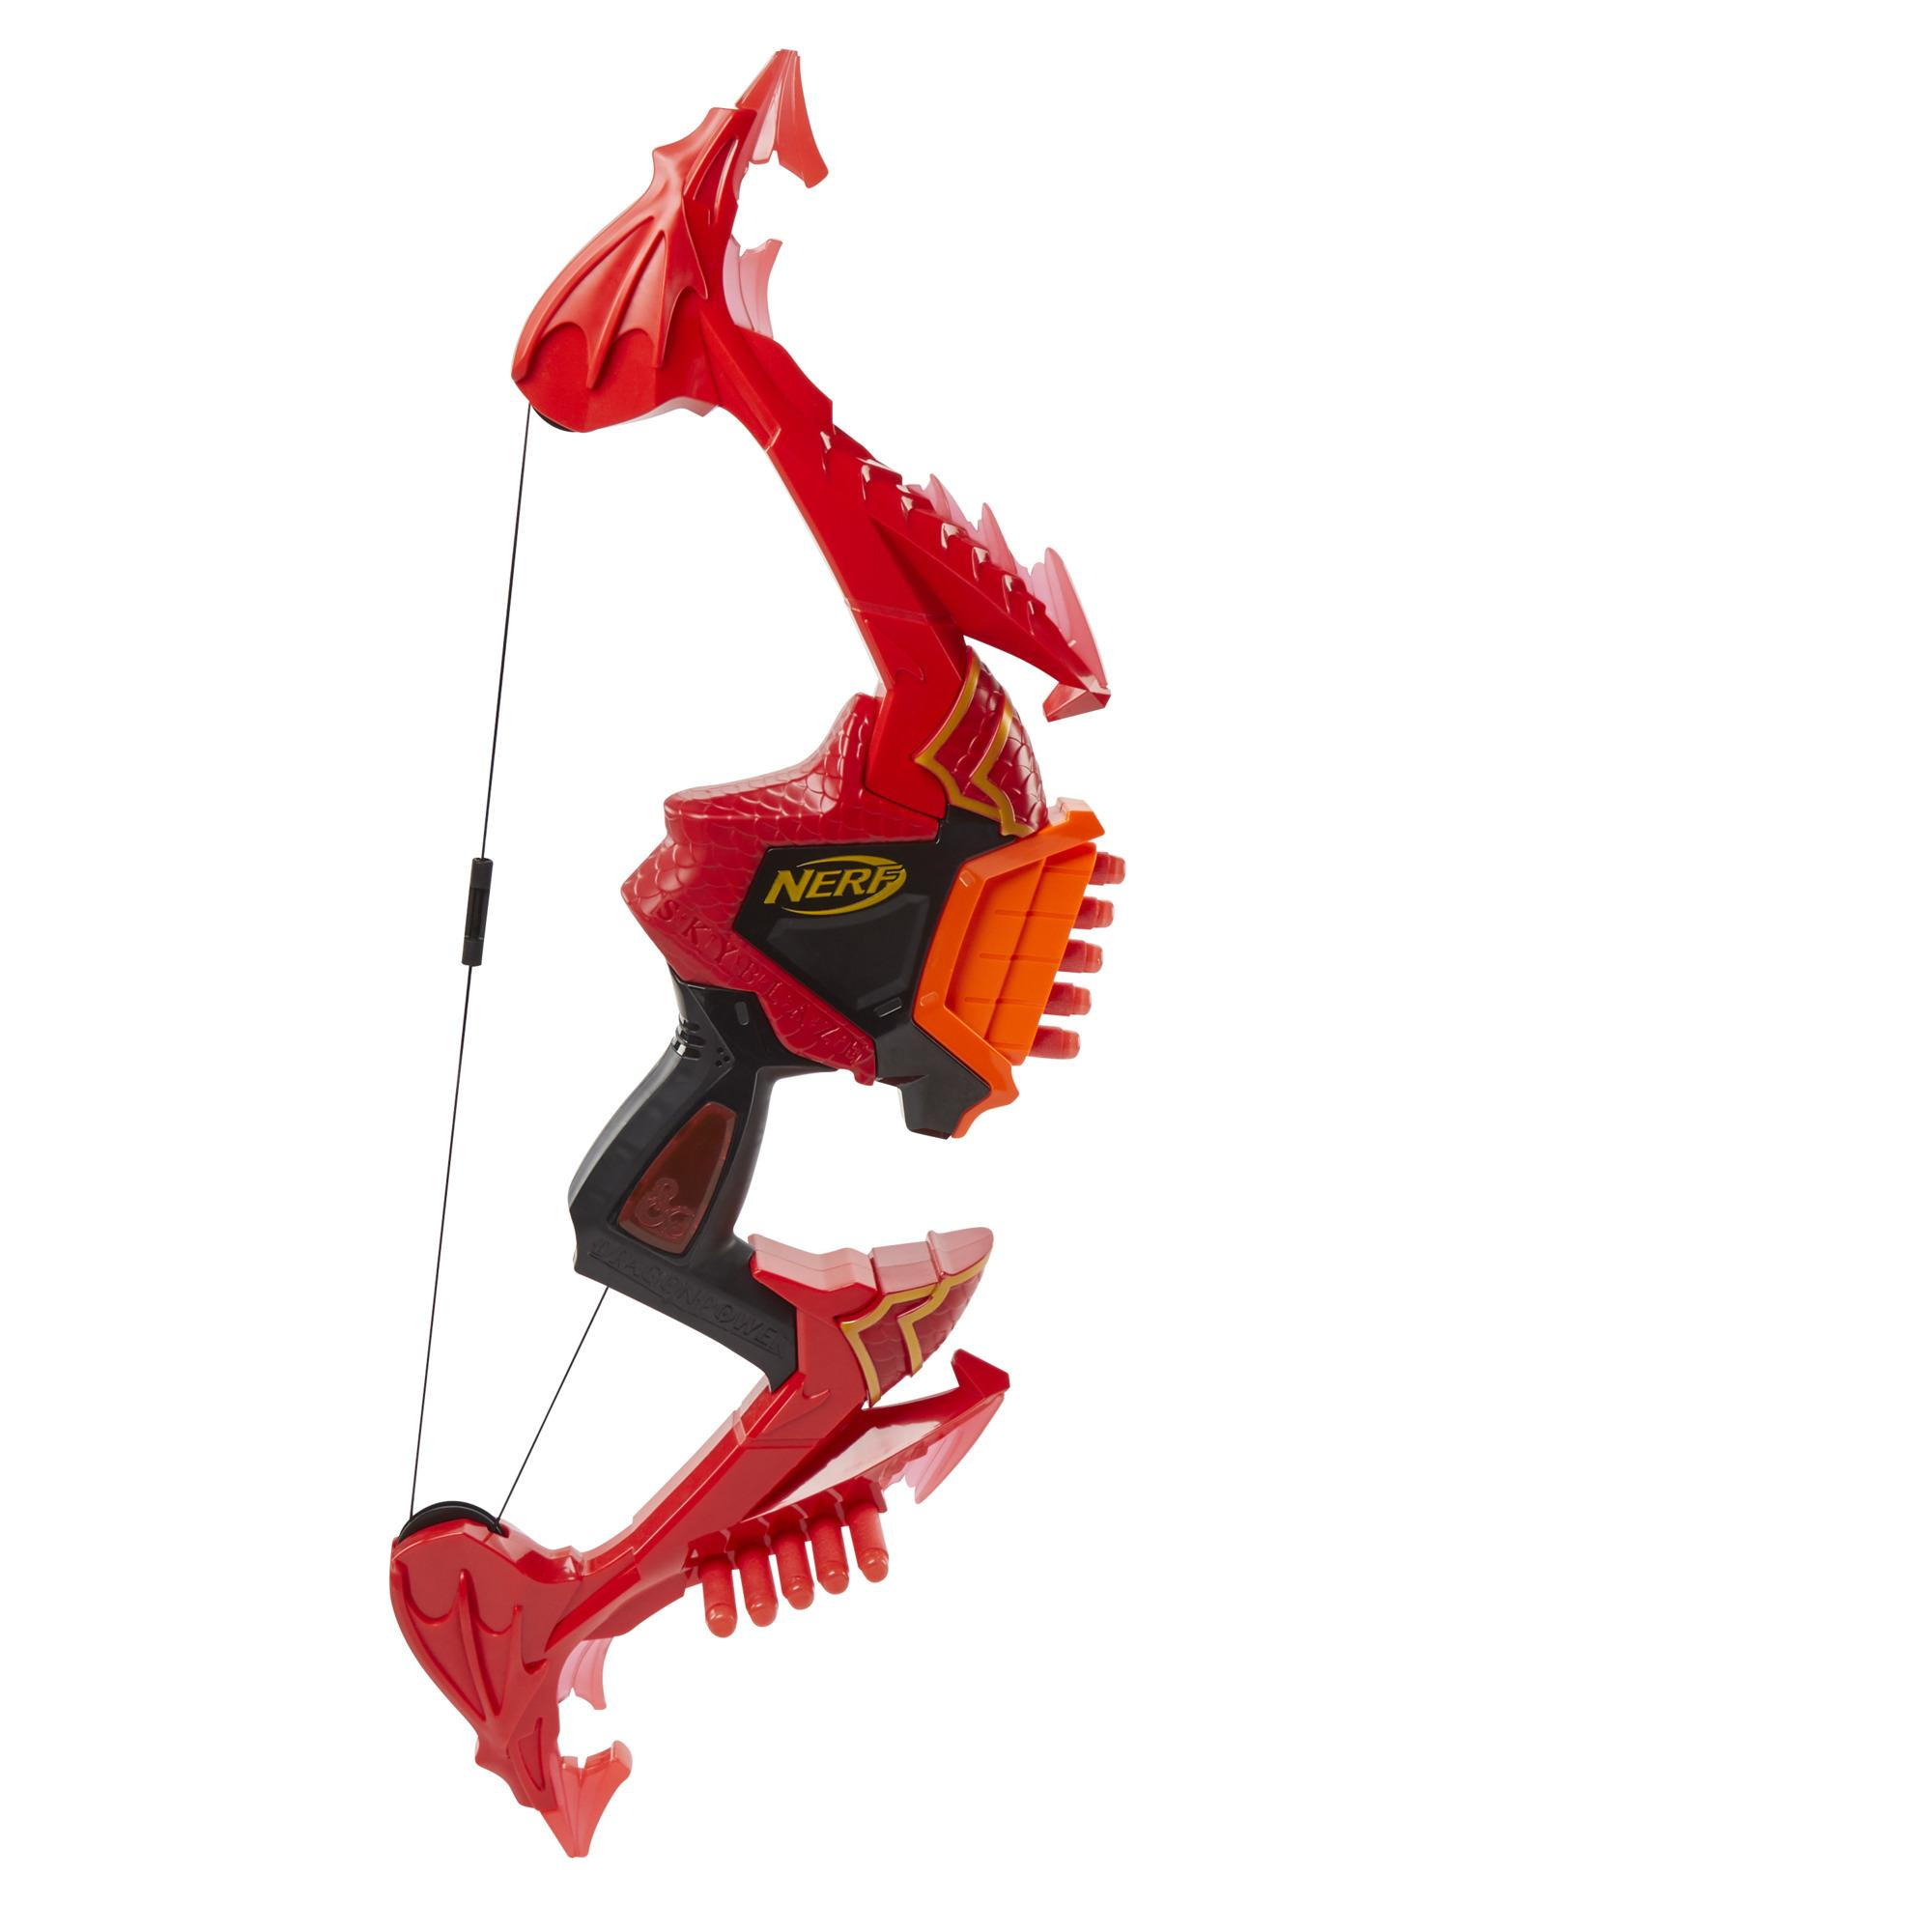 Nerf DragonPower Skyblaze Dart Bow, Inspired by Dungeons and Dragons, Dragon Bow Action, 10 Nerf Darts, 5-Dart Storage